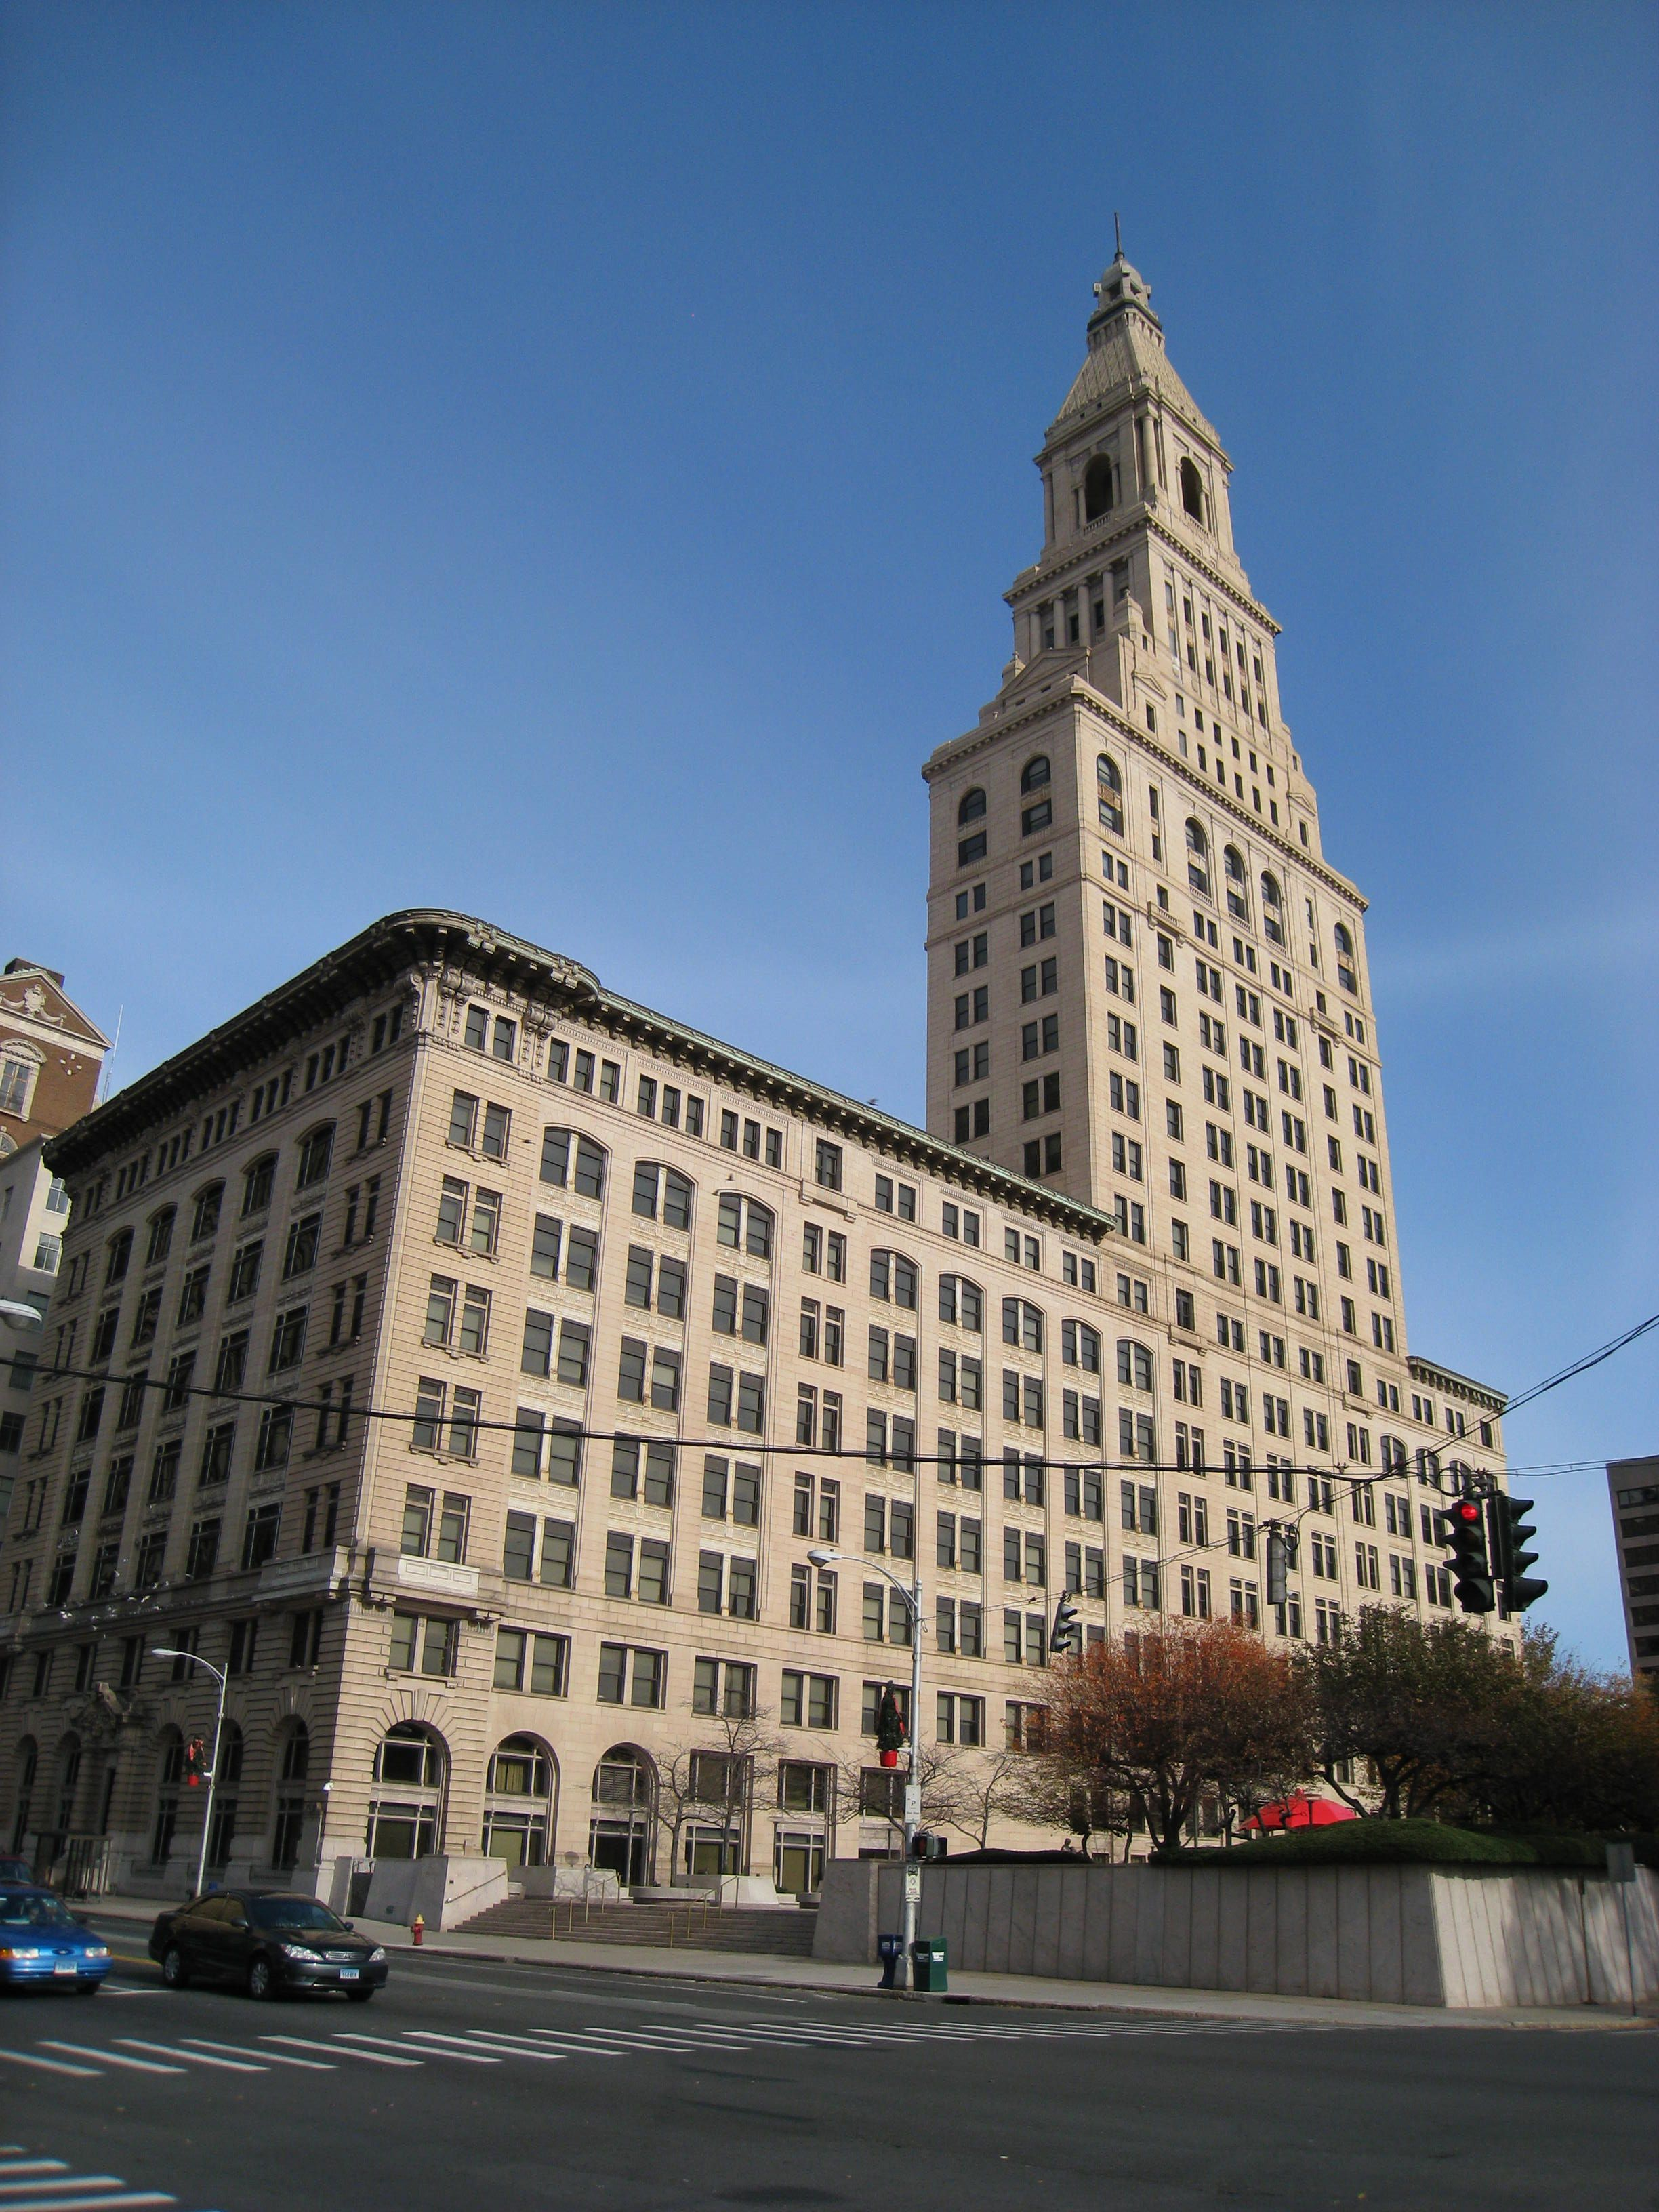 Art Deco This Is A Travelers Tower In Hartford Ct The